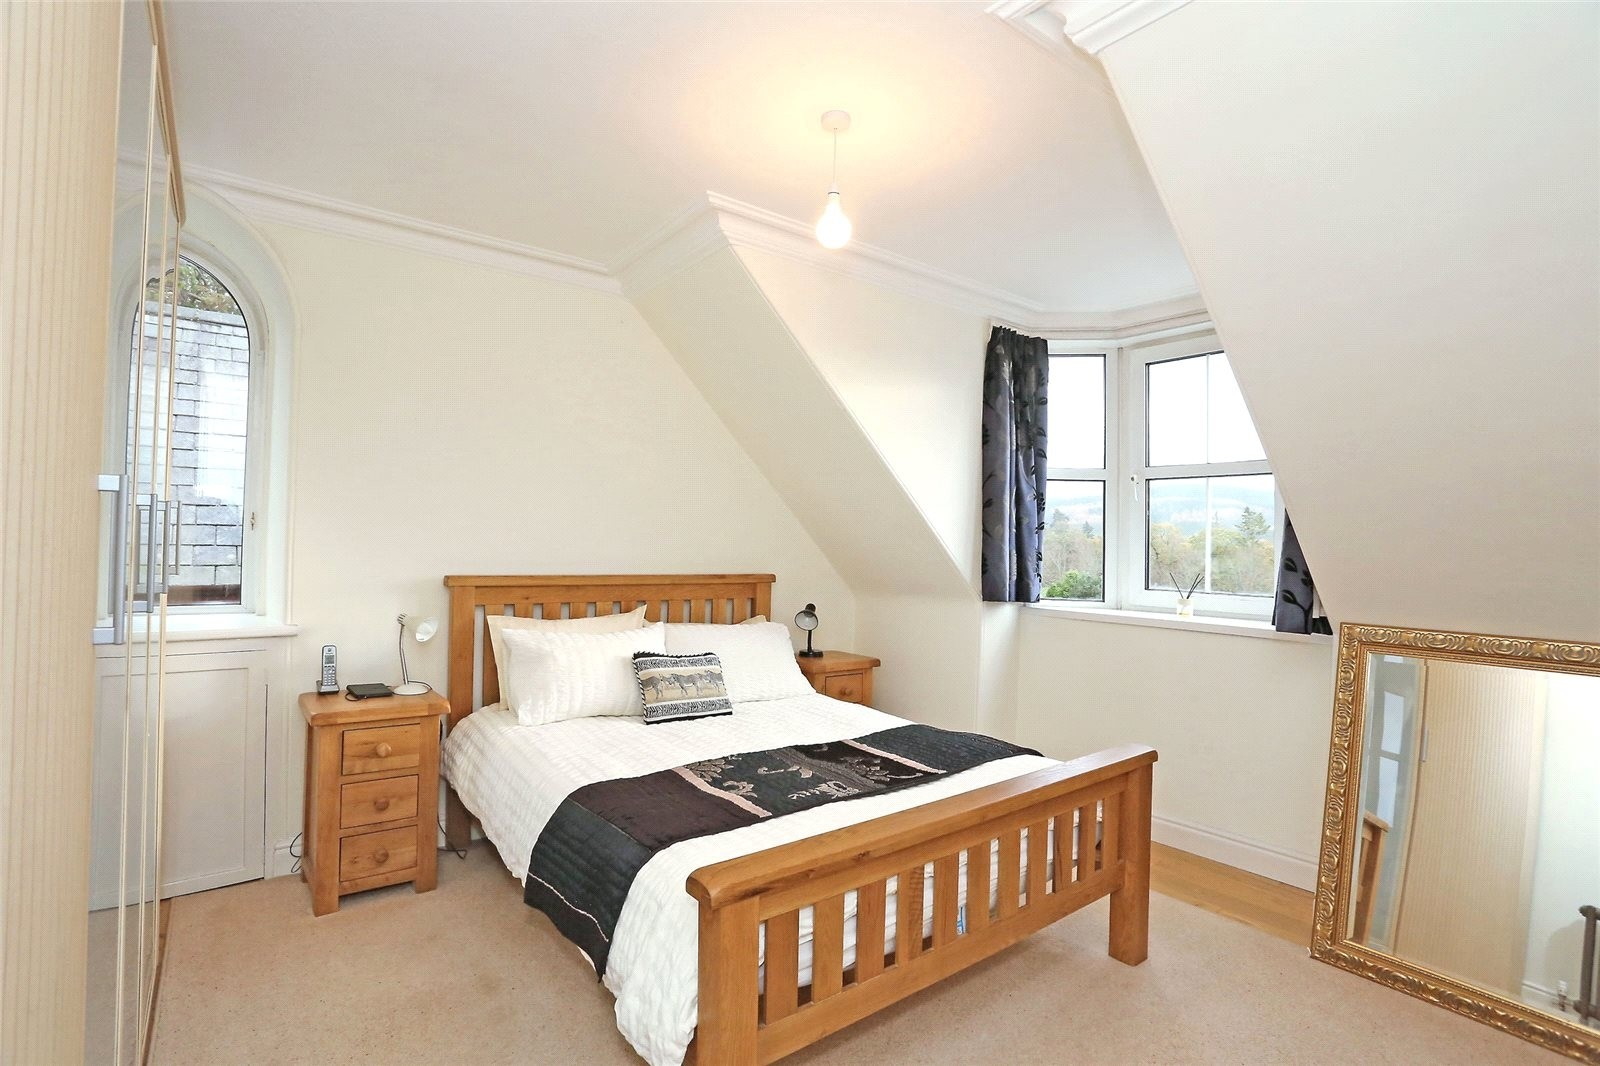 Guest House in the heart of Banchory with Airbnb Opportunity - Image 4